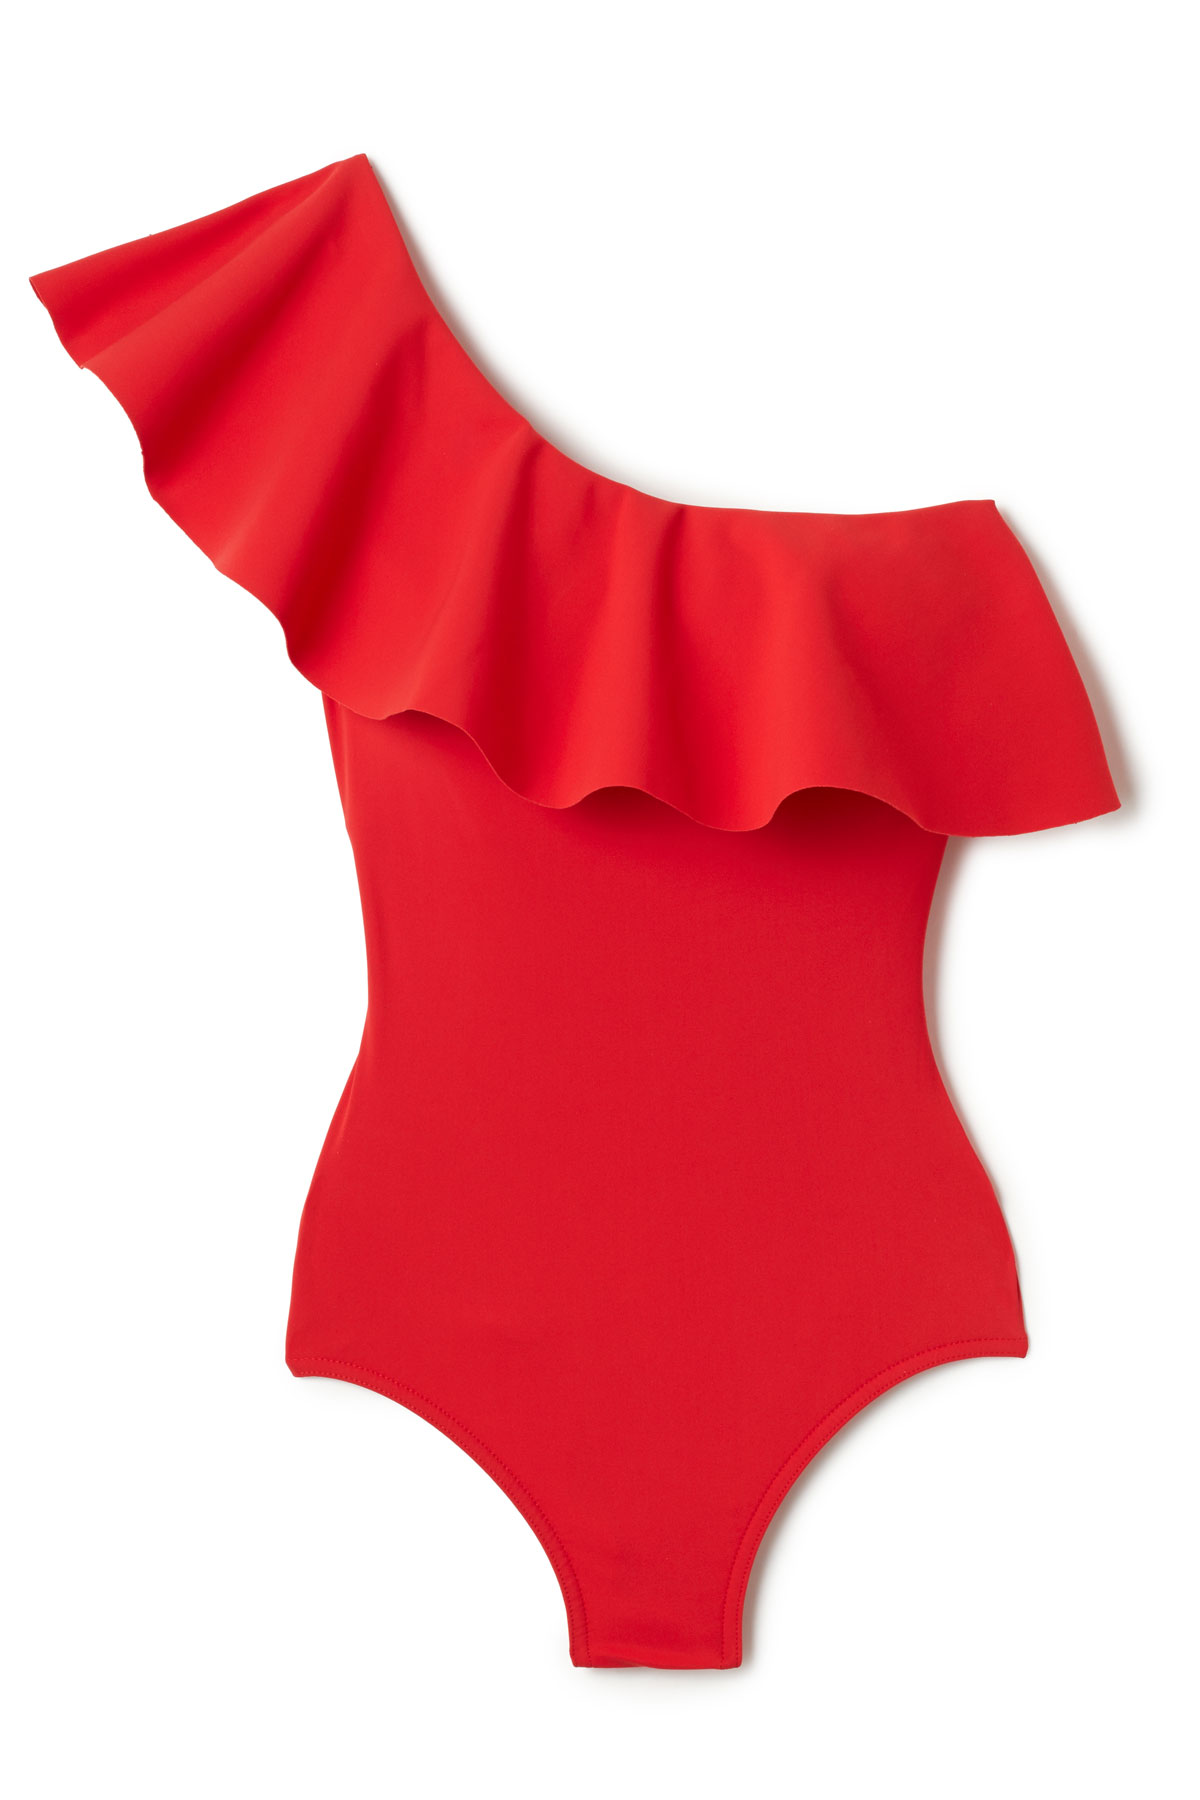 Ruffled Asymmetrical One Piece Swimsuit - Cherry 3